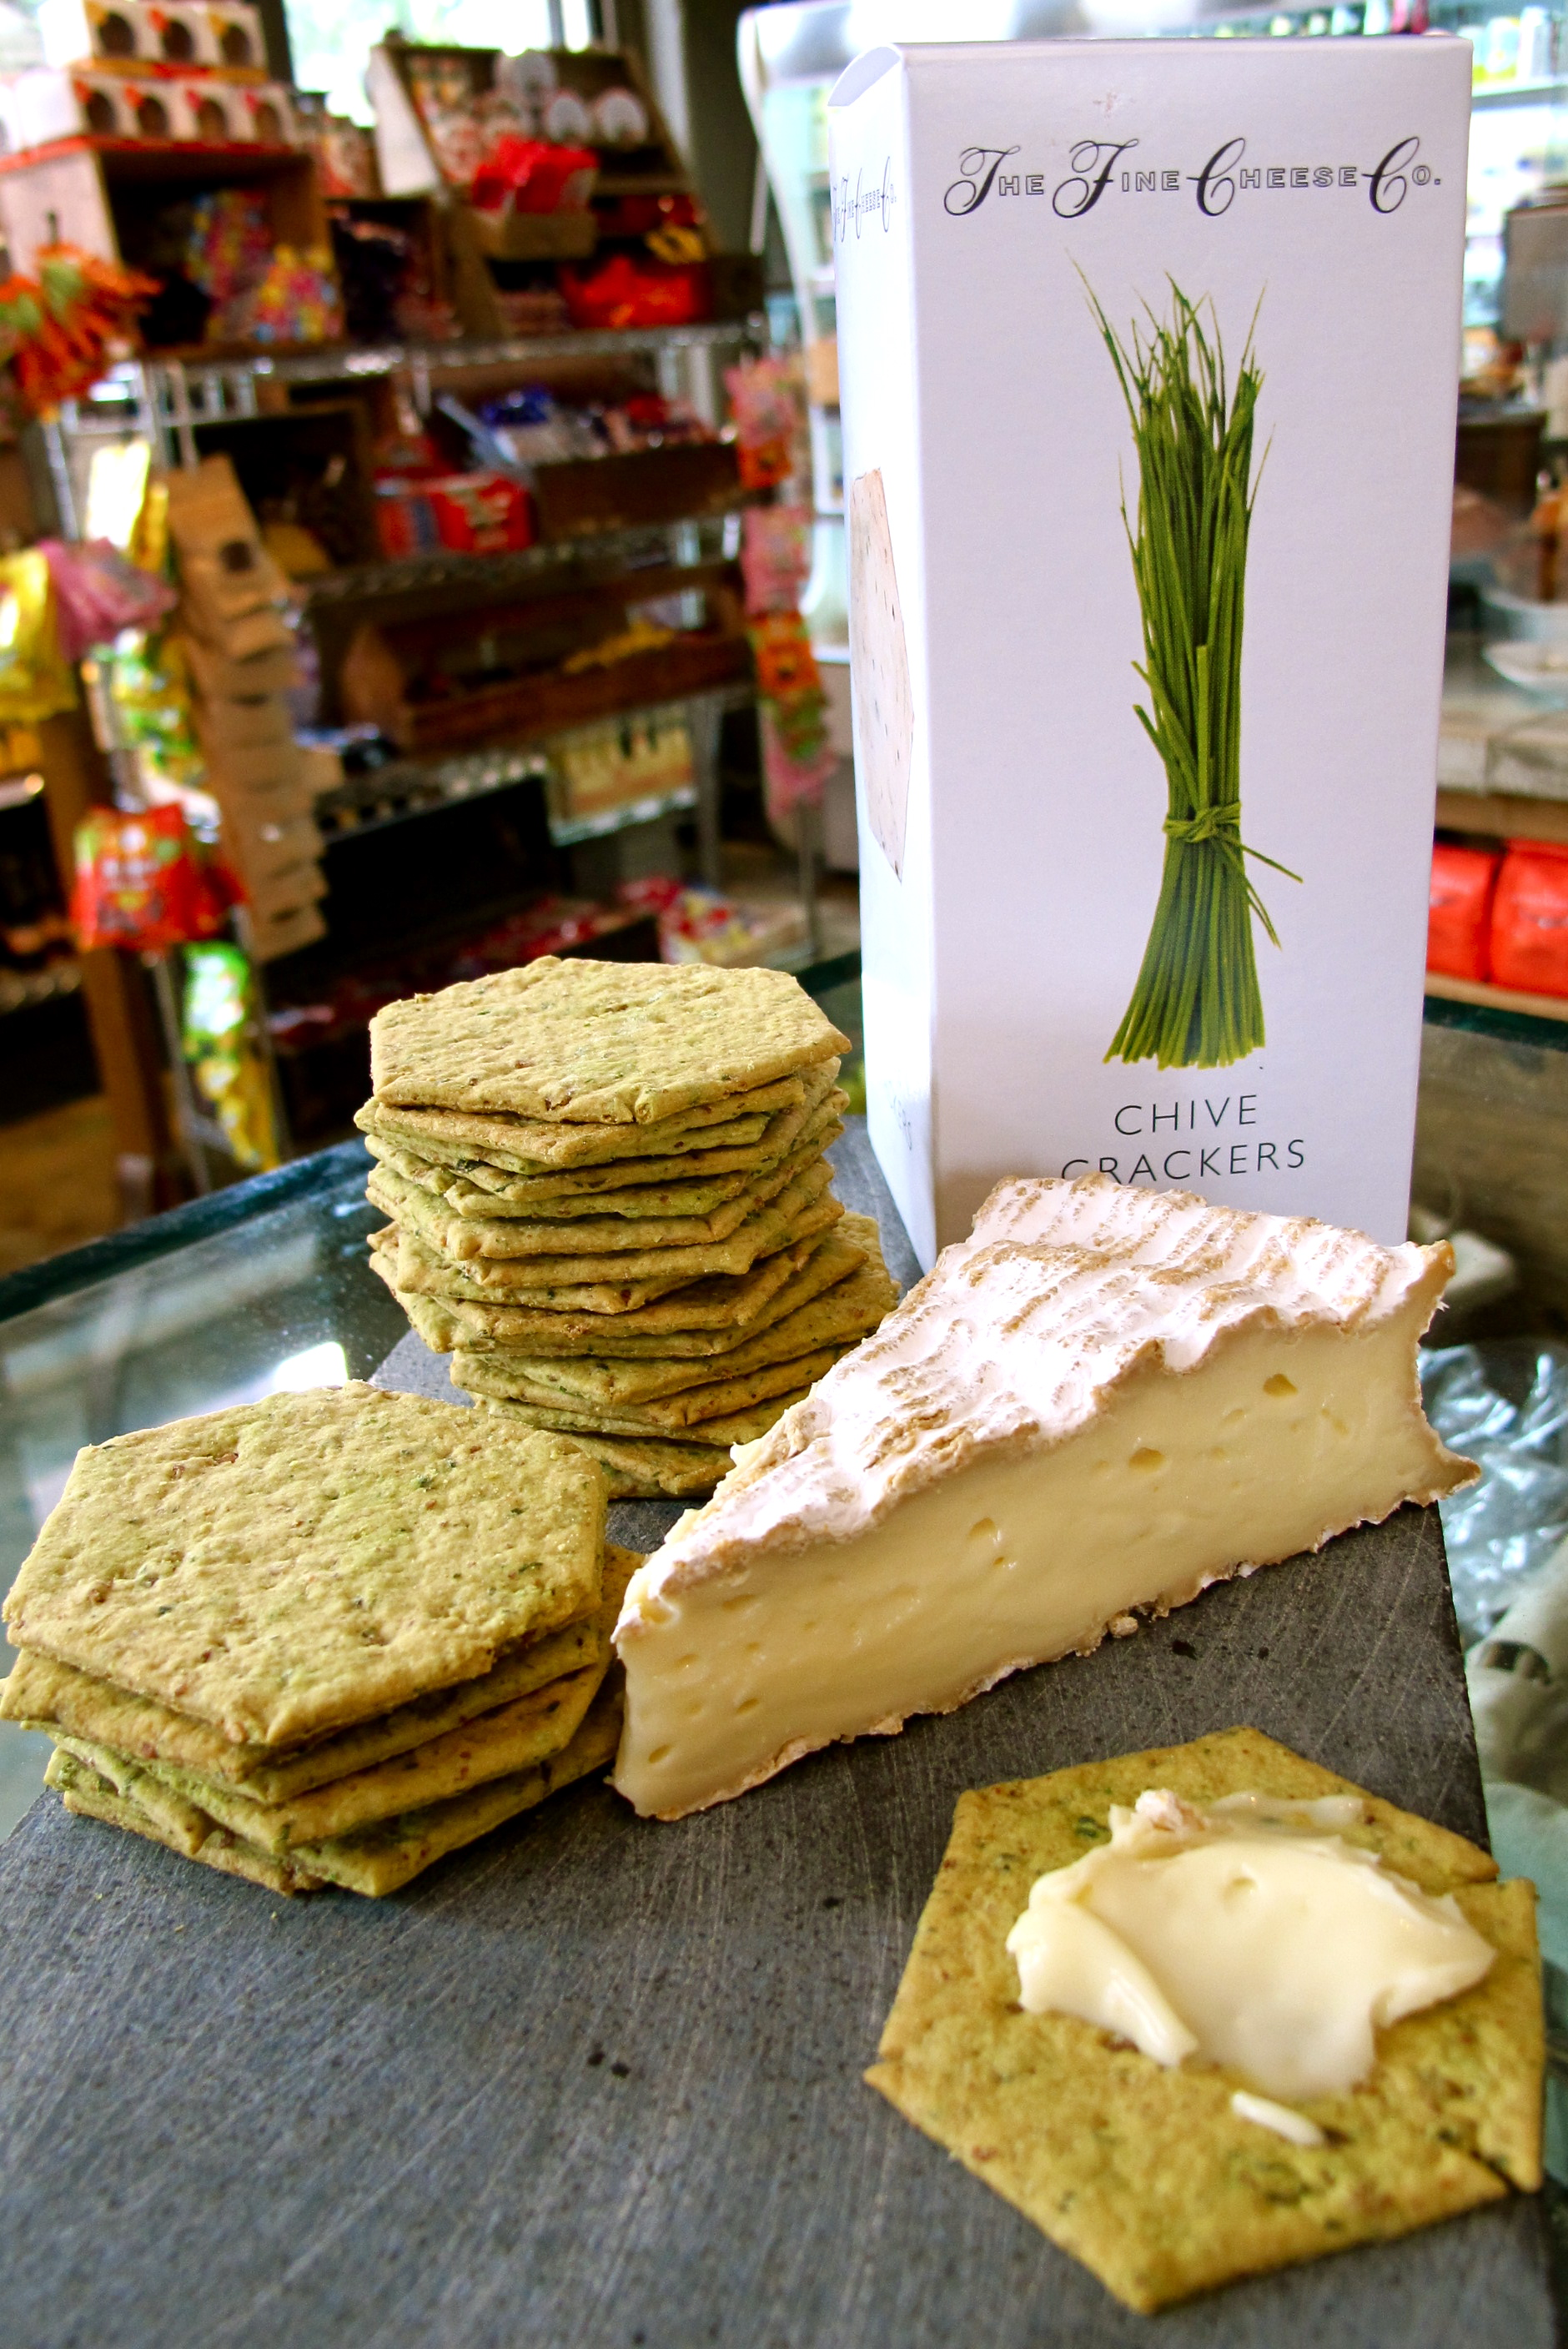 Fine Cheese Co Chive Crackers and Fromage De Meaux